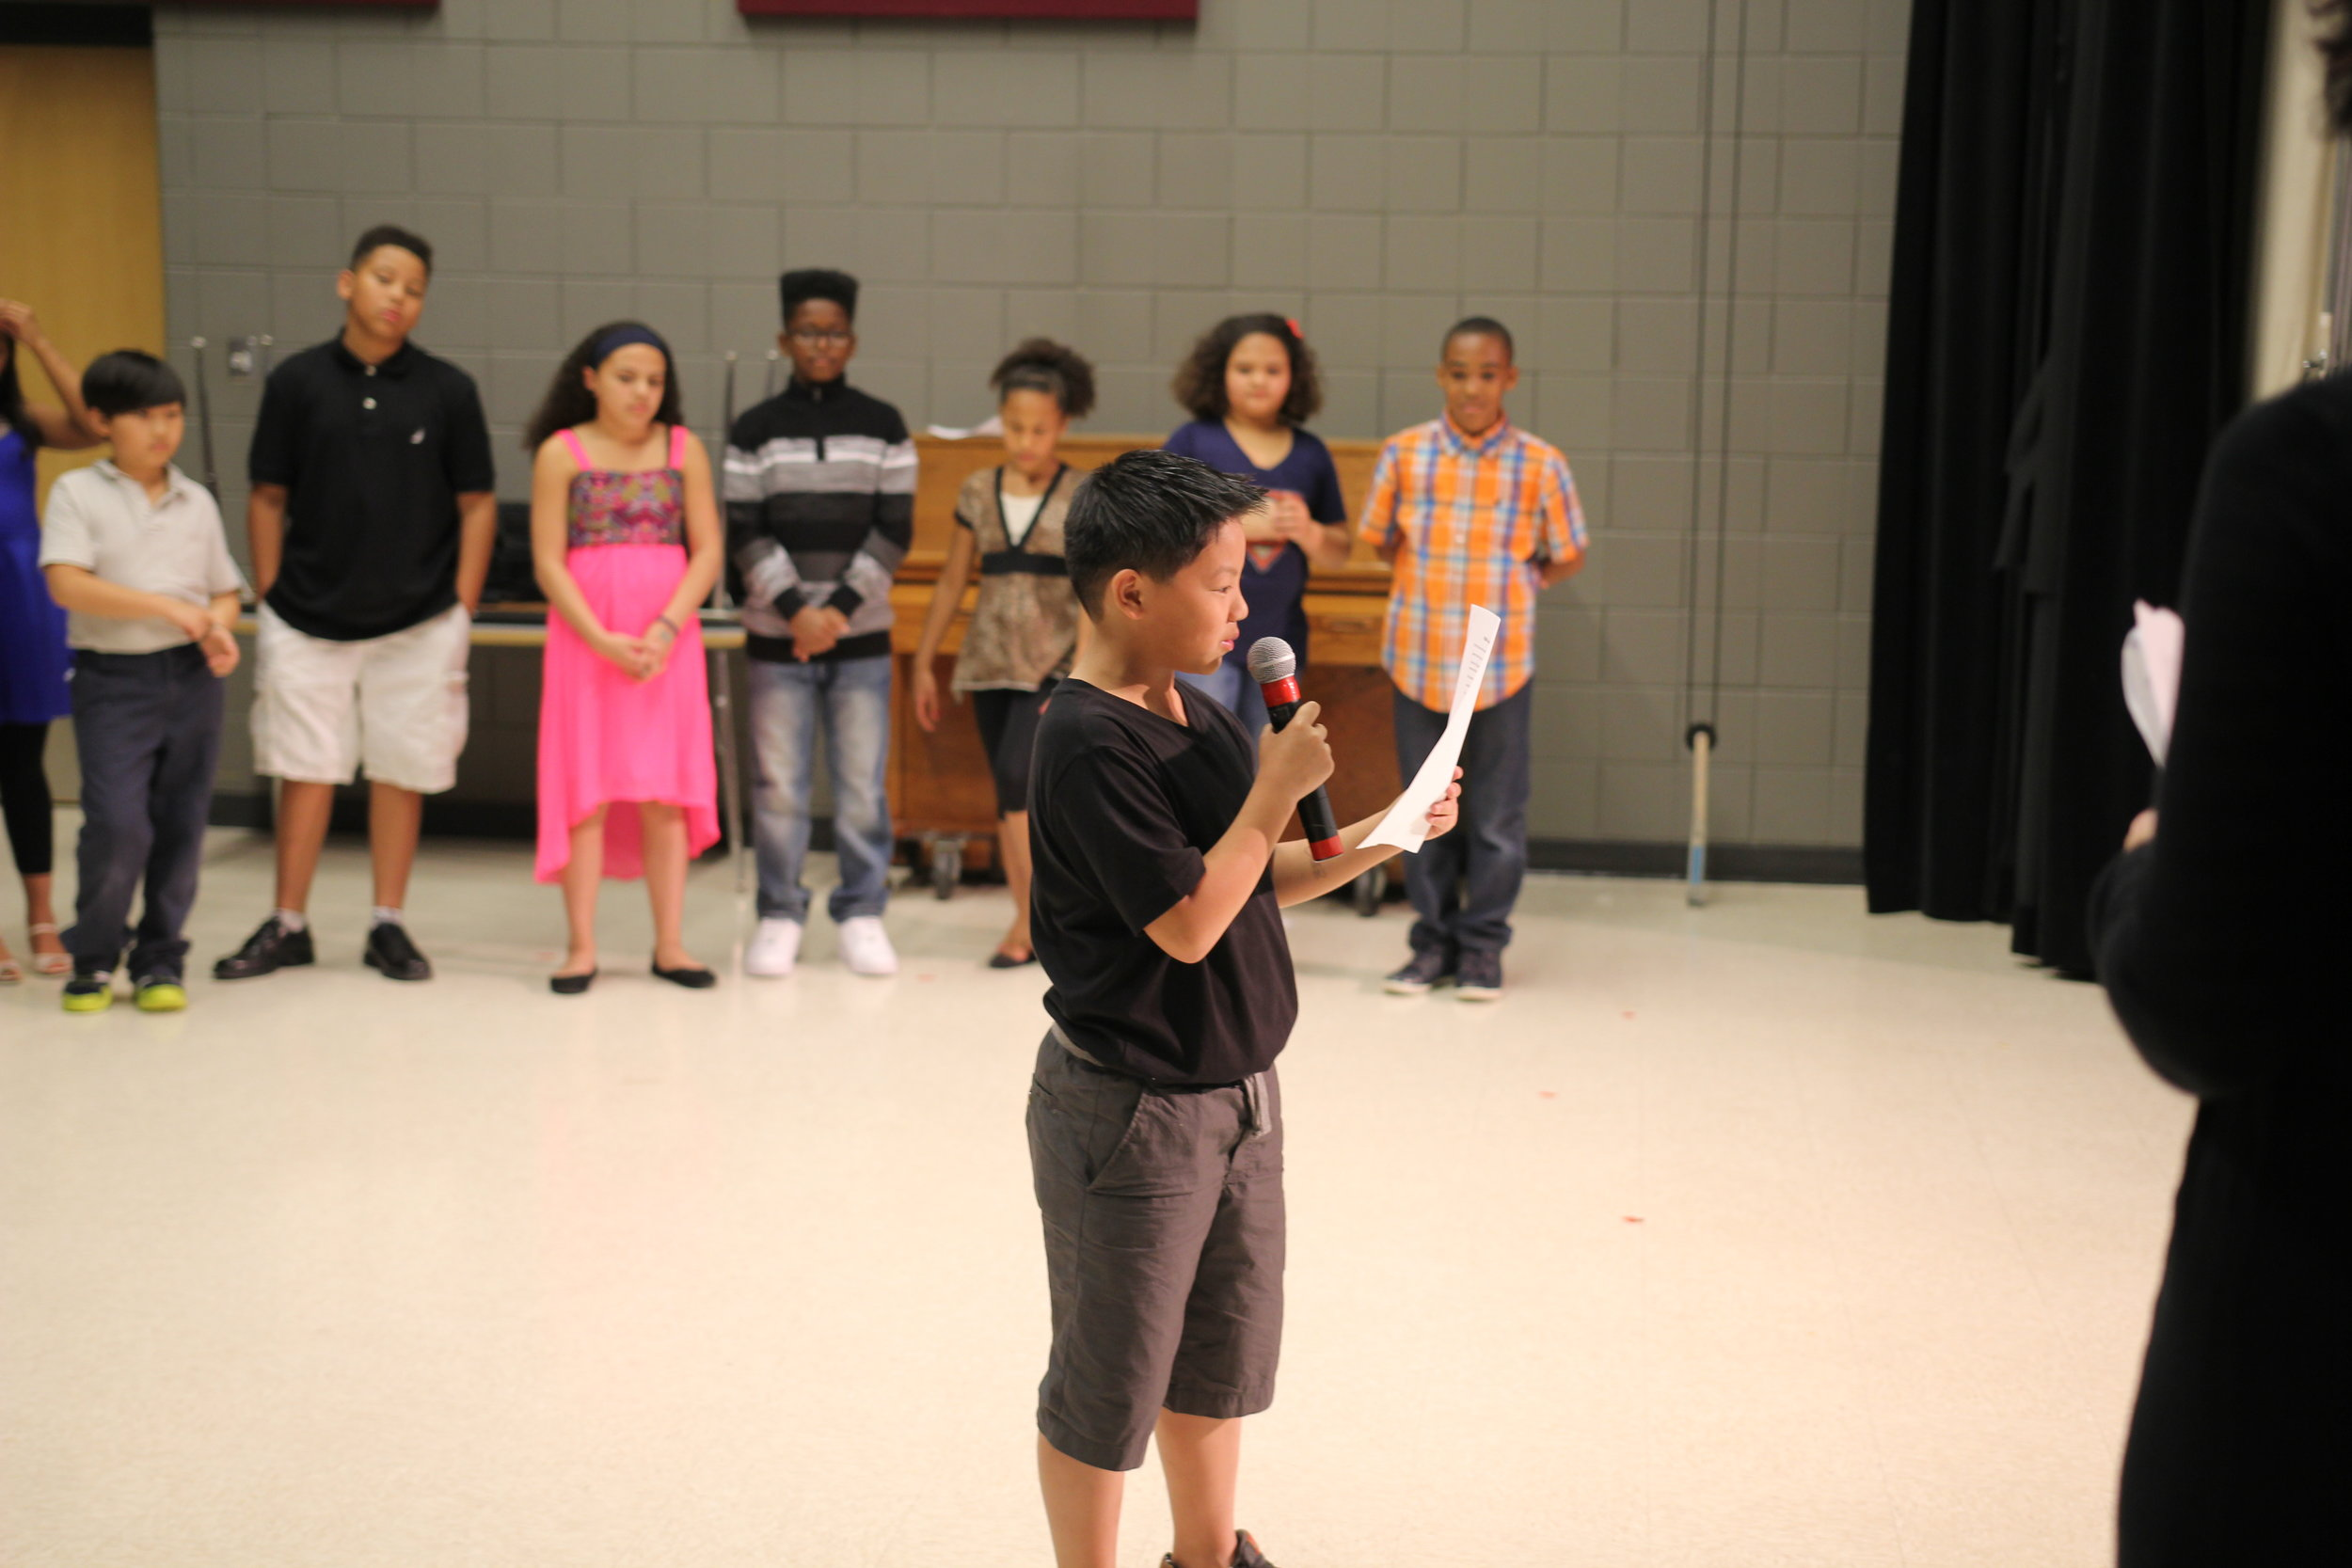 5th Grader at harambee Elementary school's culminating Event